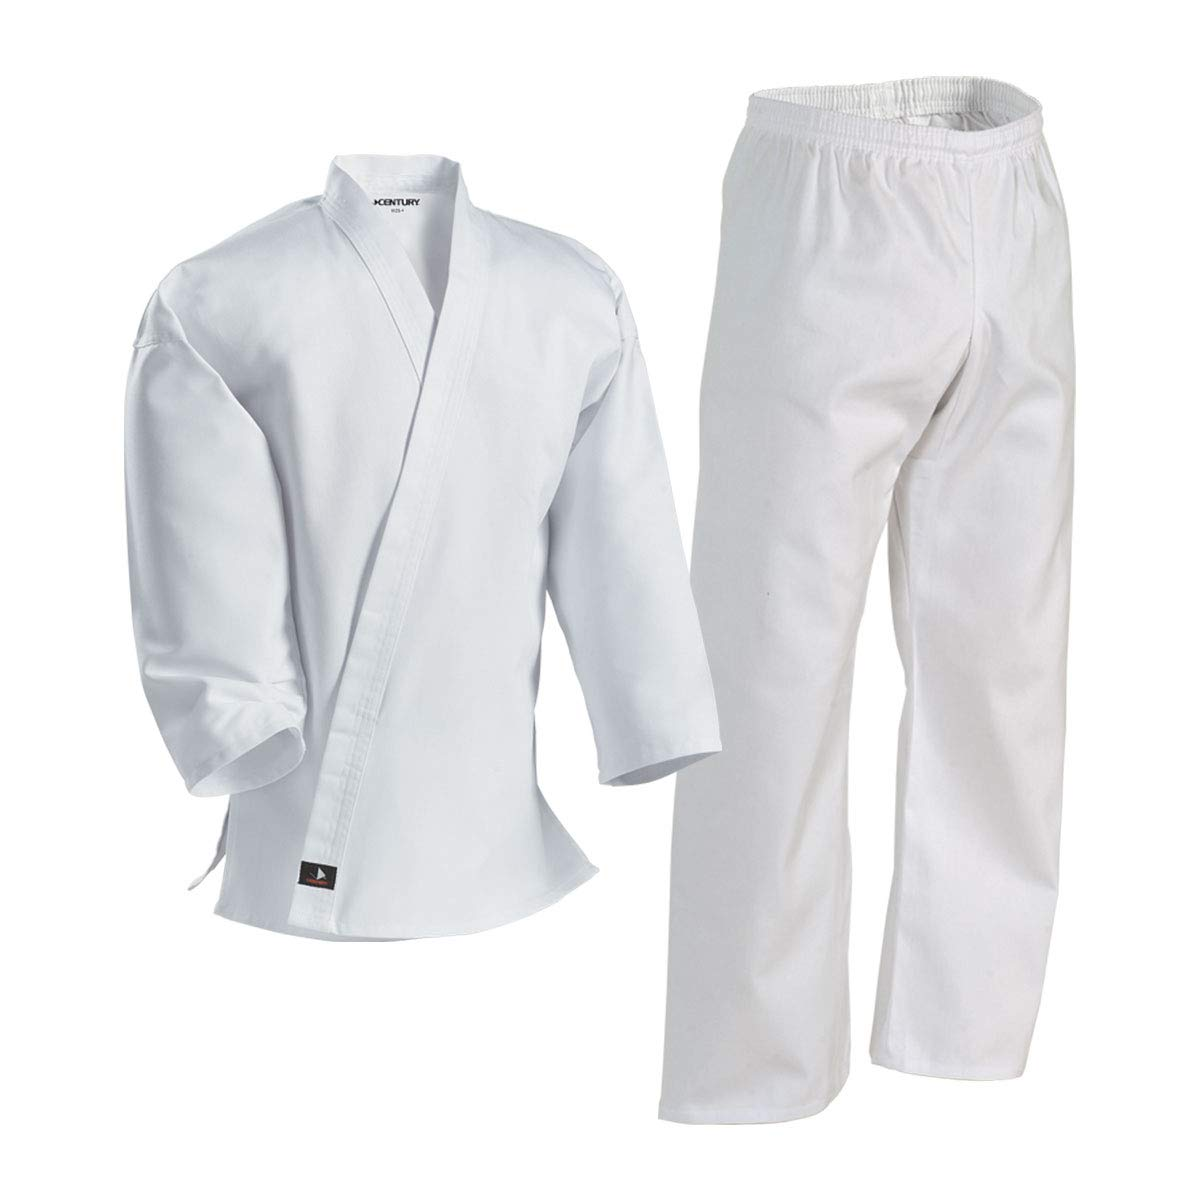 Century Karate Martial Arts Uniform with Belt Light Weight White Cotton Elastic Waistband & Drawstring for Adult & Children Size 000-7 (Size 6 200-230lb 6ft 2in - 6ft 5in) by Century